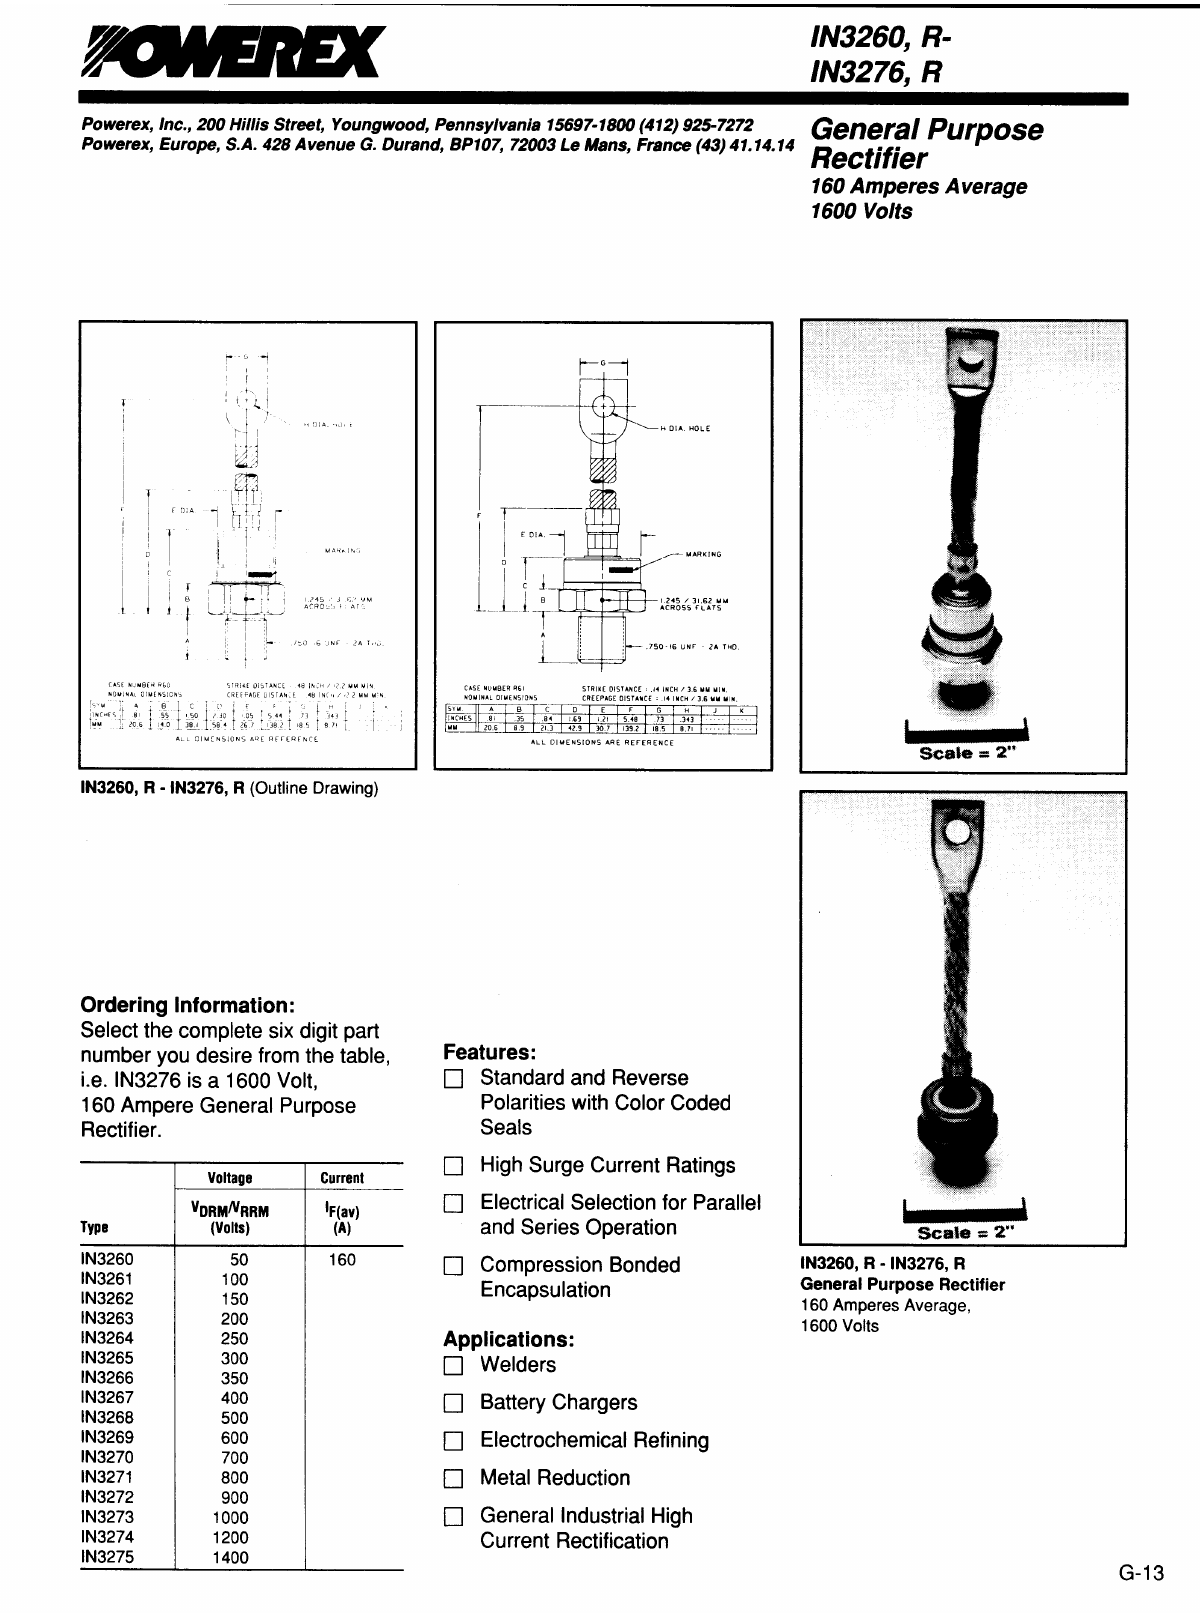 R-IN3268 datasheet